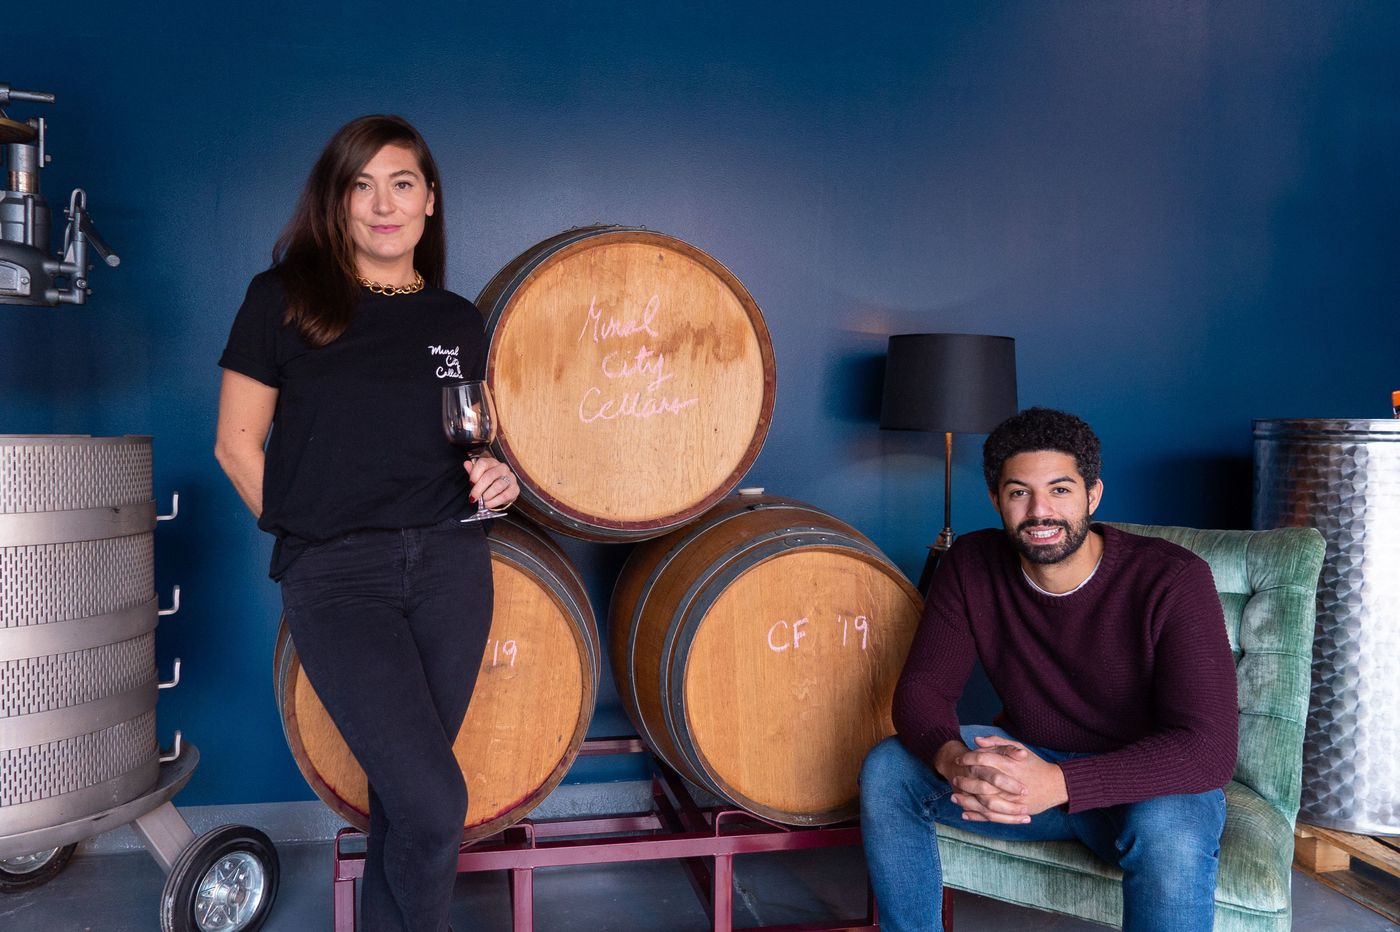 Mural City Cellars opening an urban winery in Philly